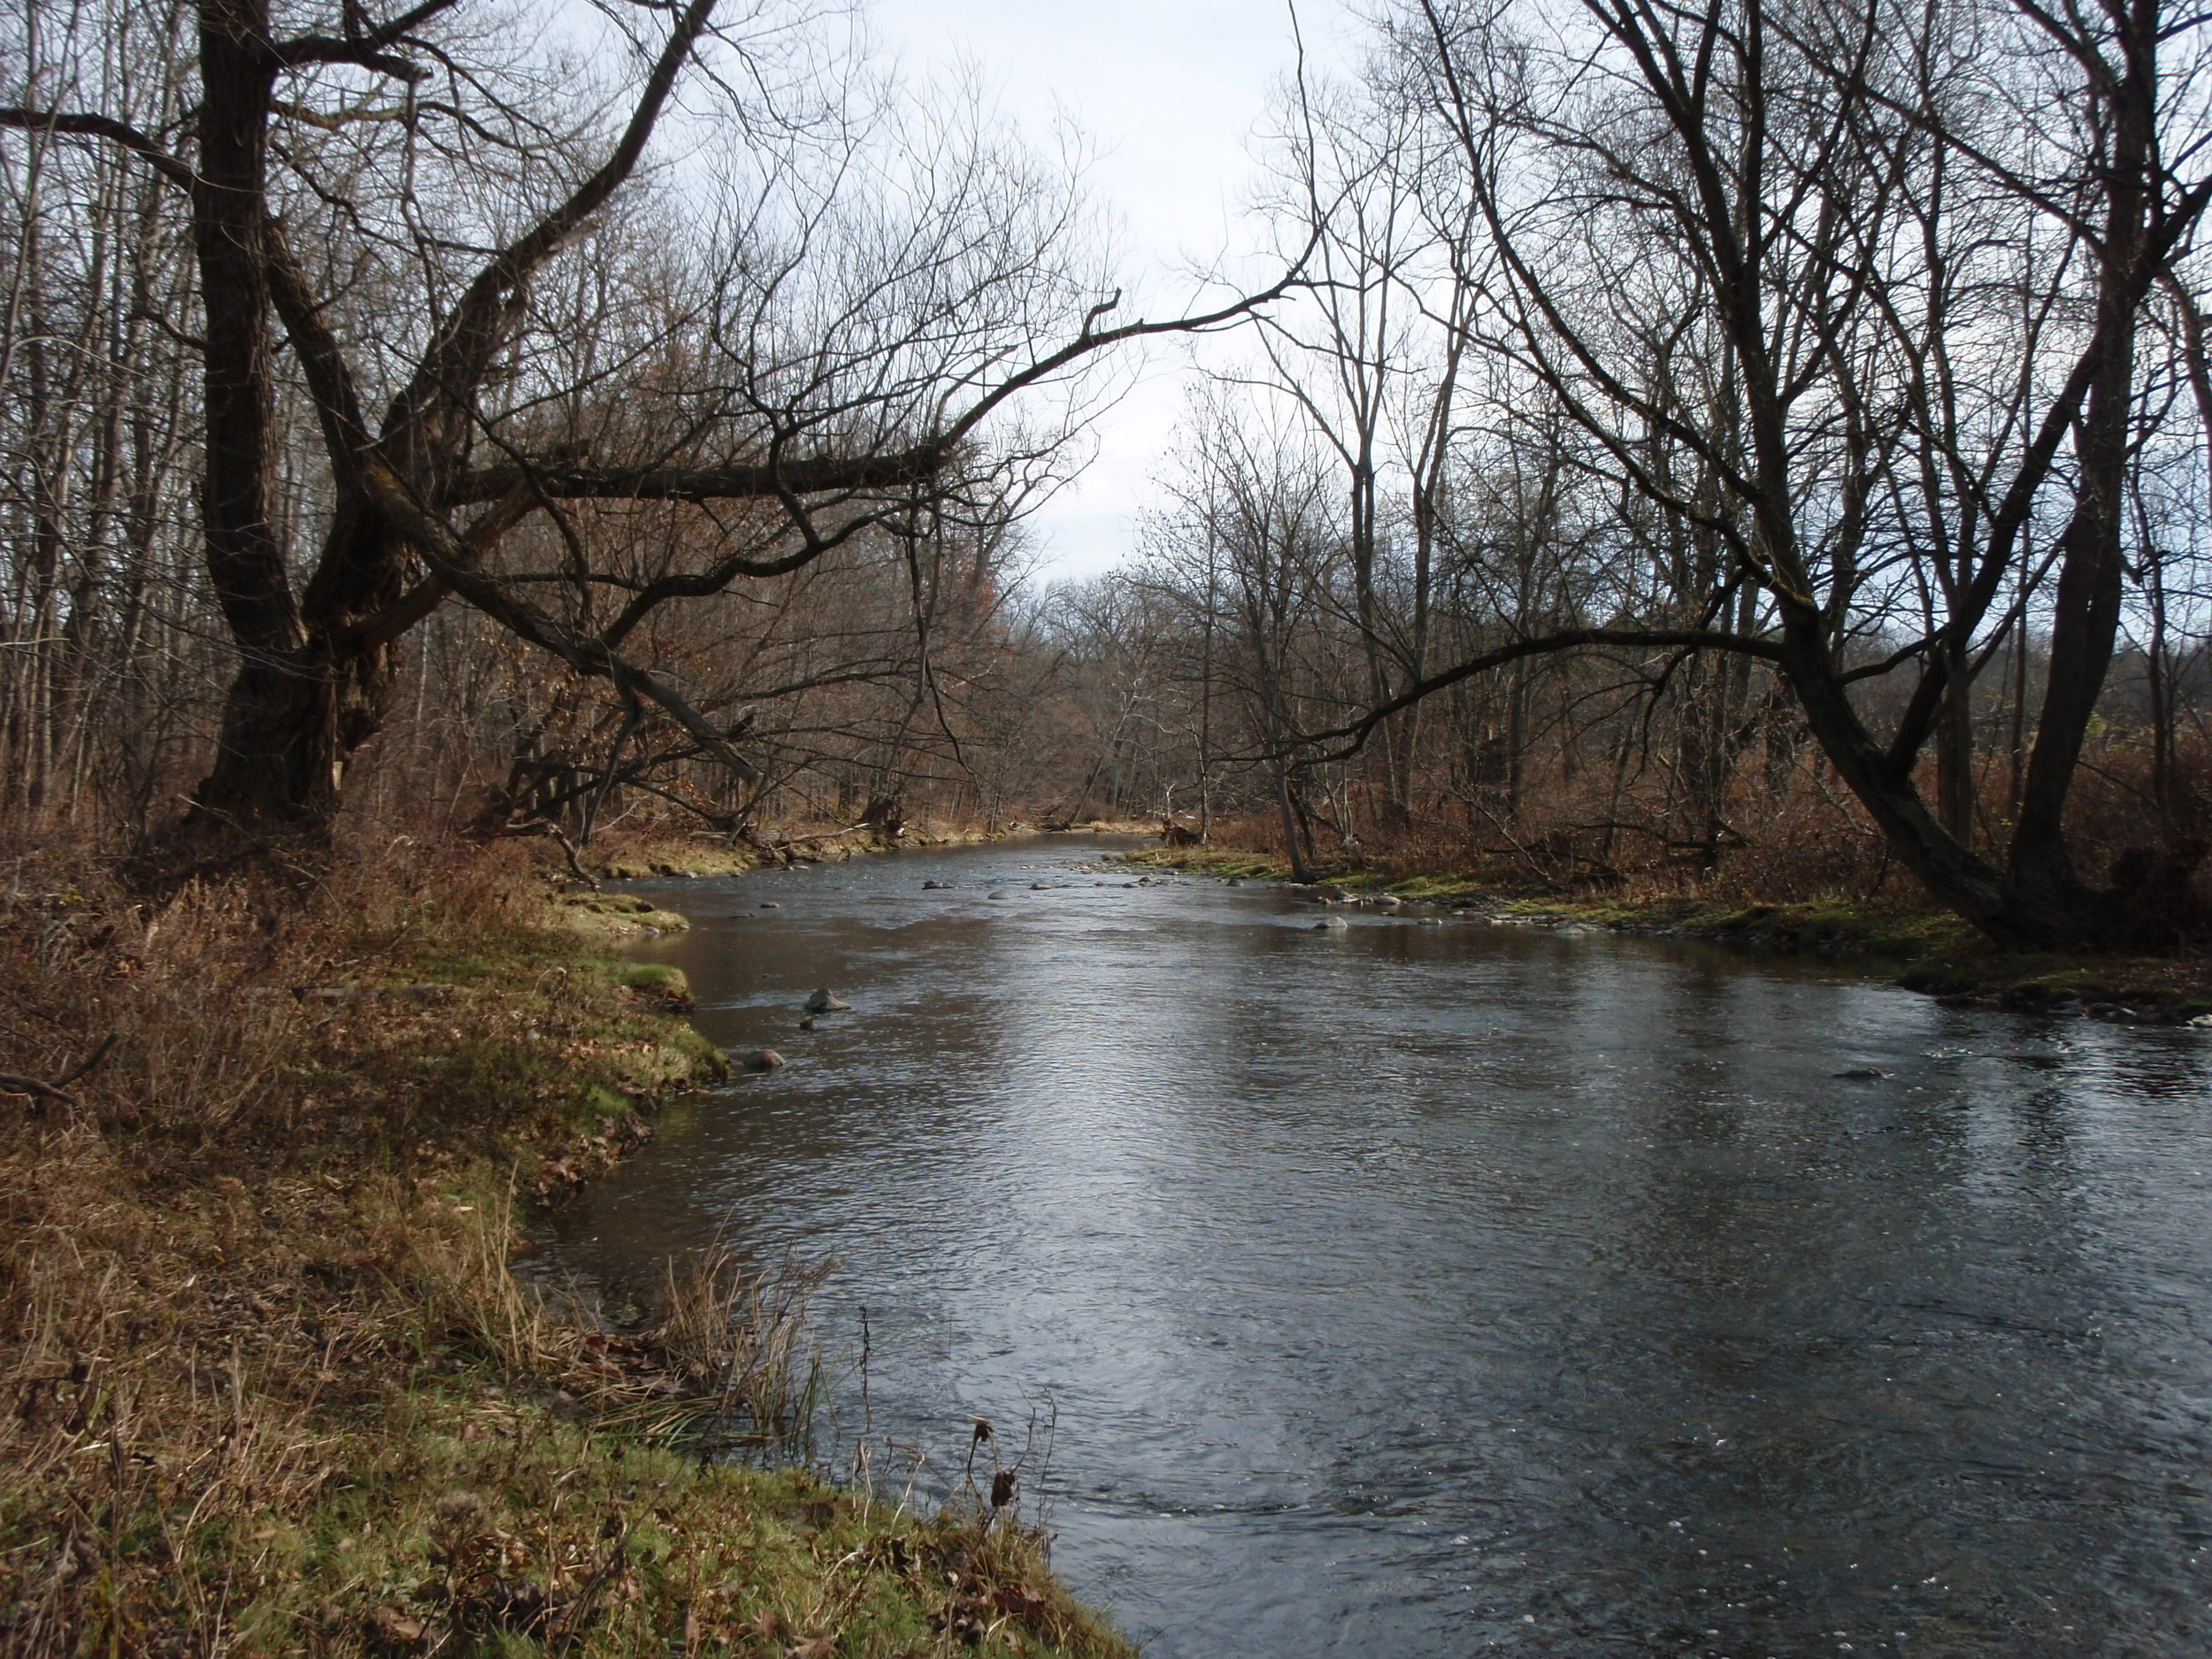 Floodplain forest along Normanskill Creek